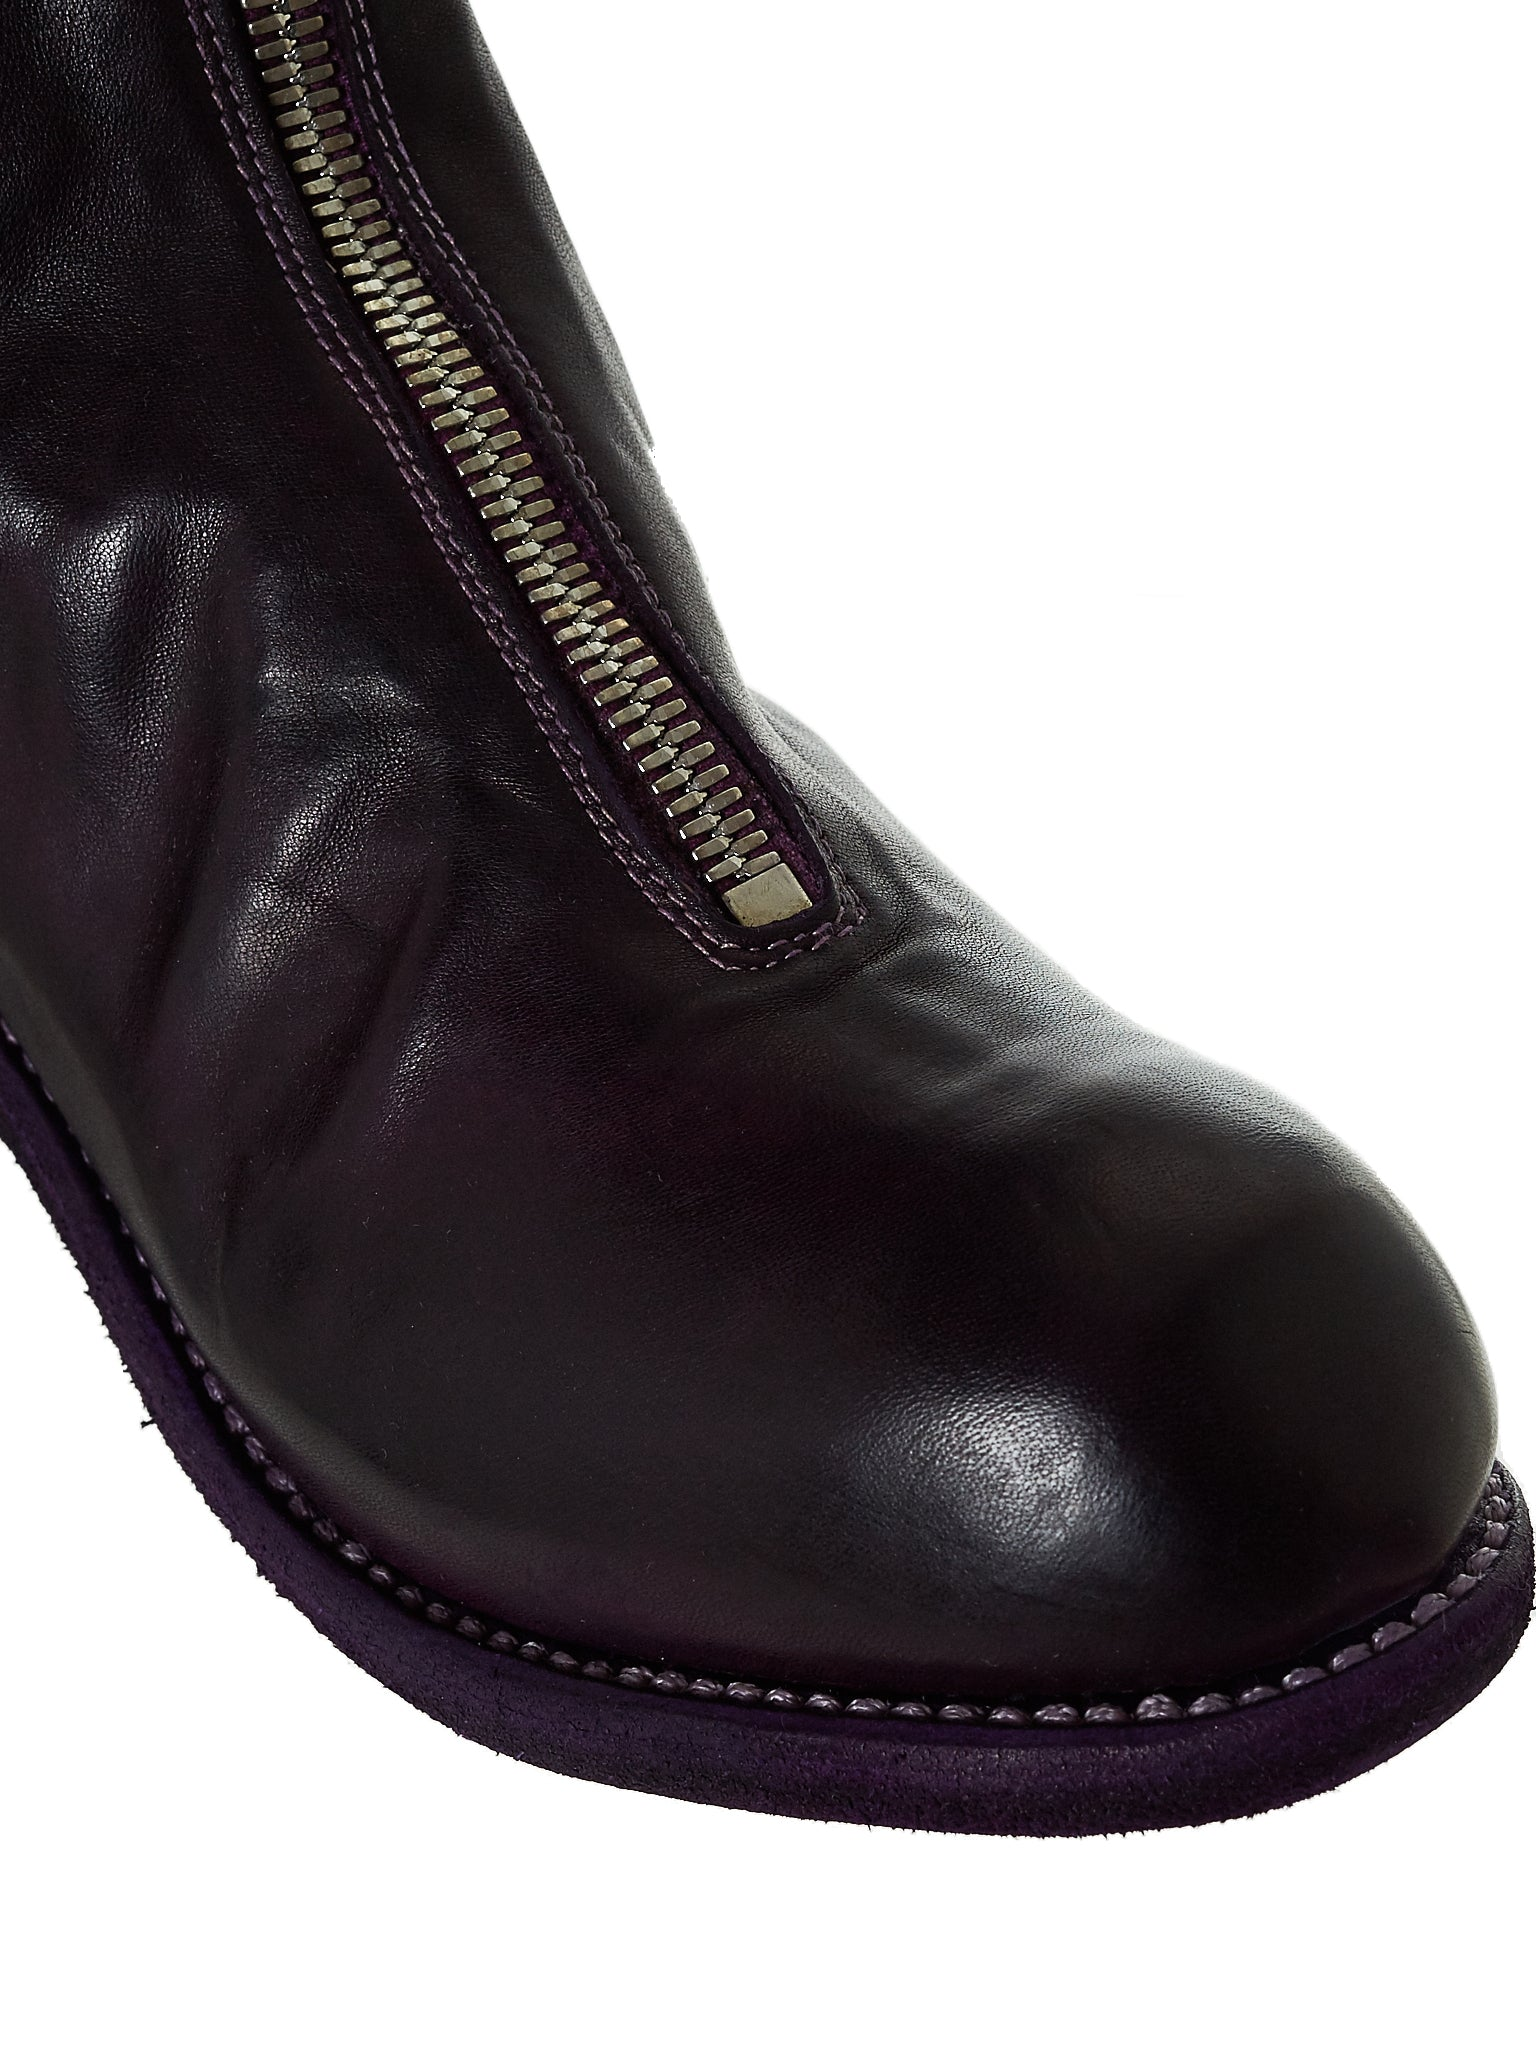 Soft Horse Leather Boot (PL1-SOFT-HORSE-FG-CV42T)